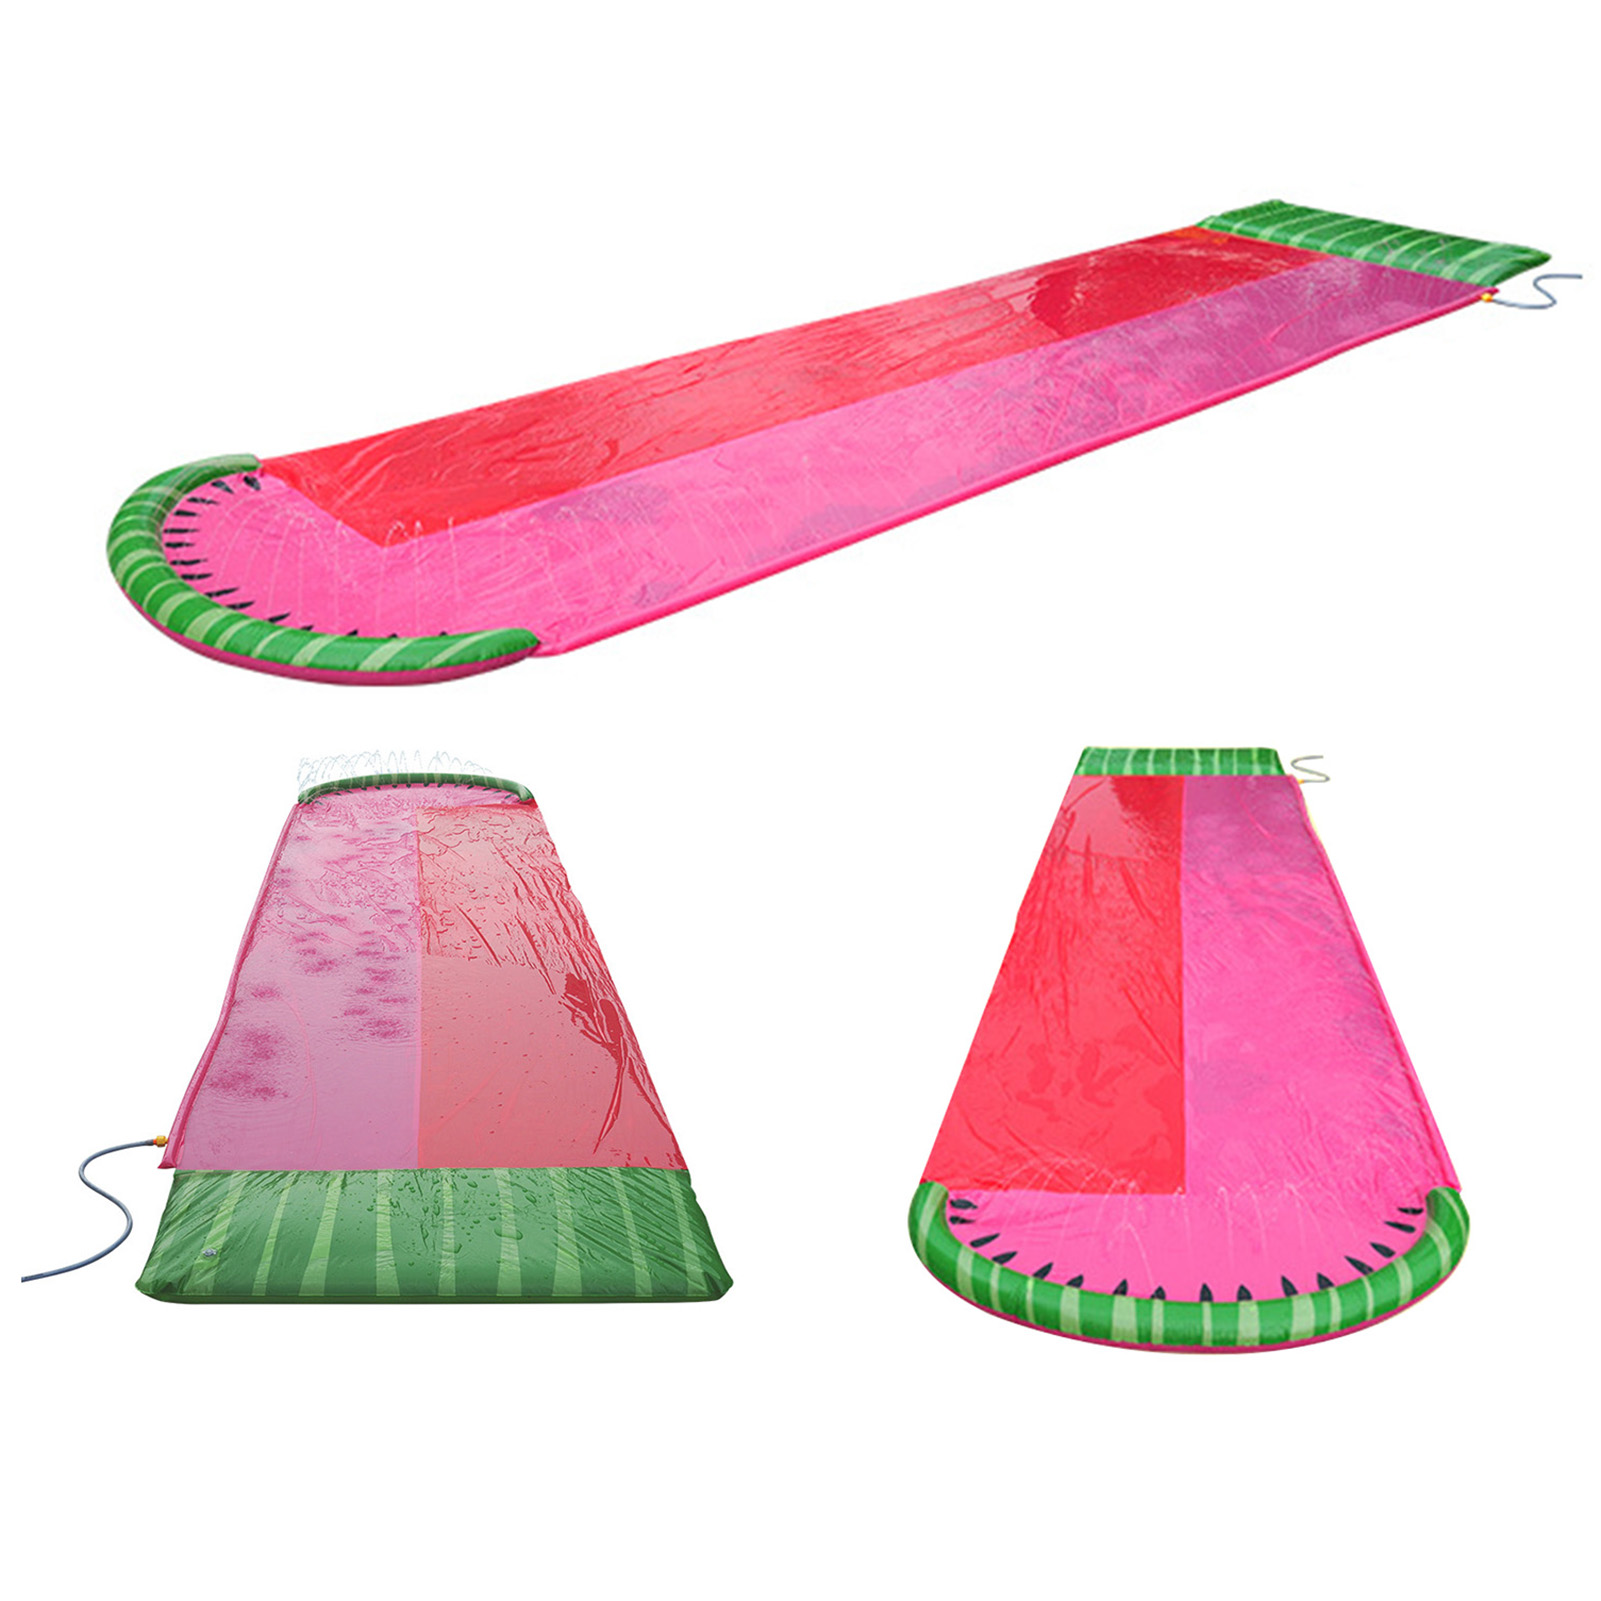 5.5M Double Single Water Slide Mat Summer Waterskiing Splash Play Toys Outdoor Surfboard Water Games With Crash Pad For Kids